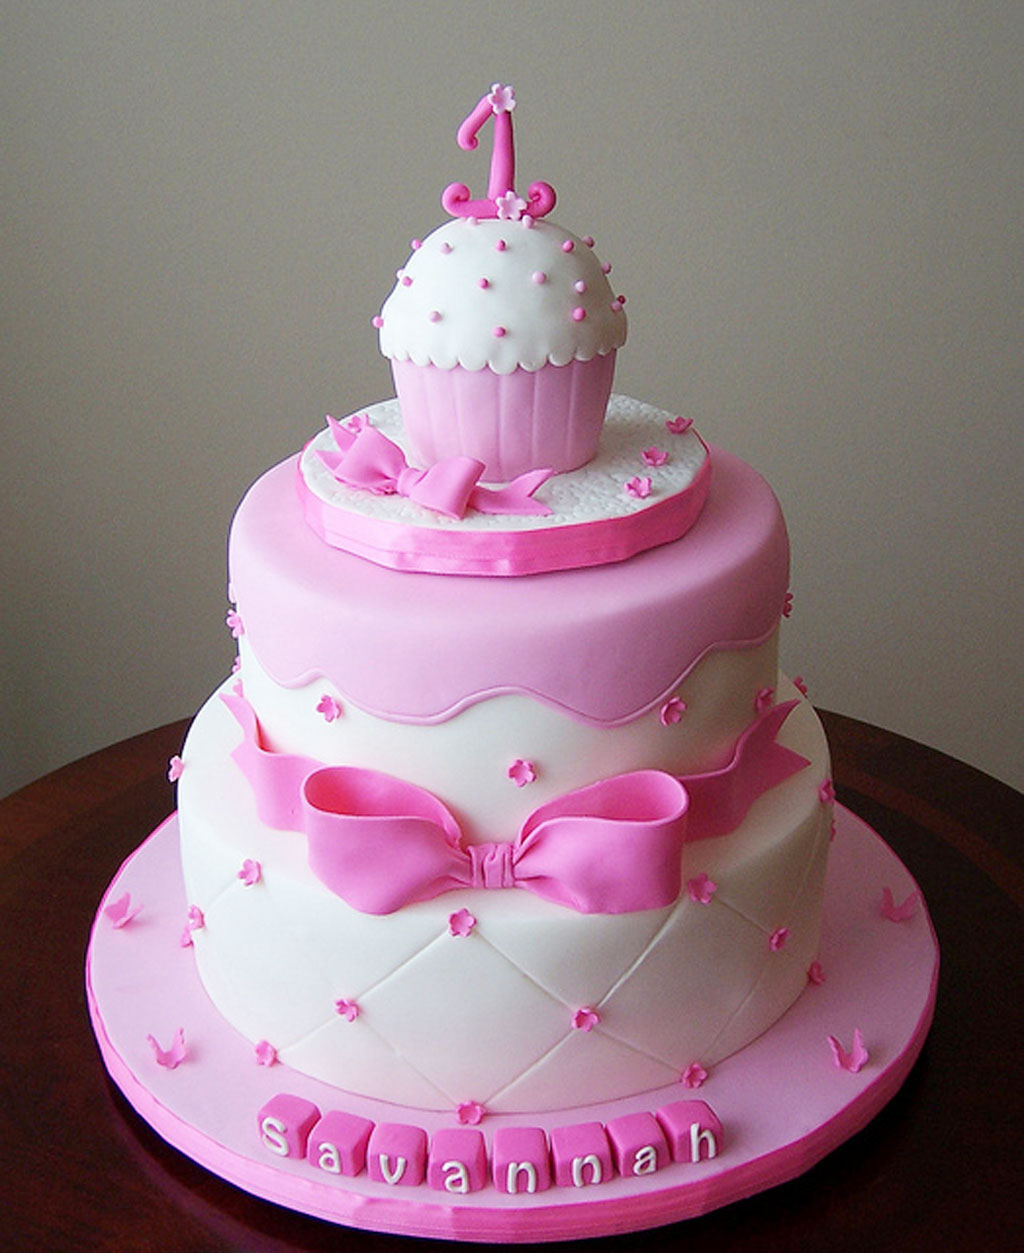 Birthday Cake Girl Ideas Image Inspiration of Cake and Birthday